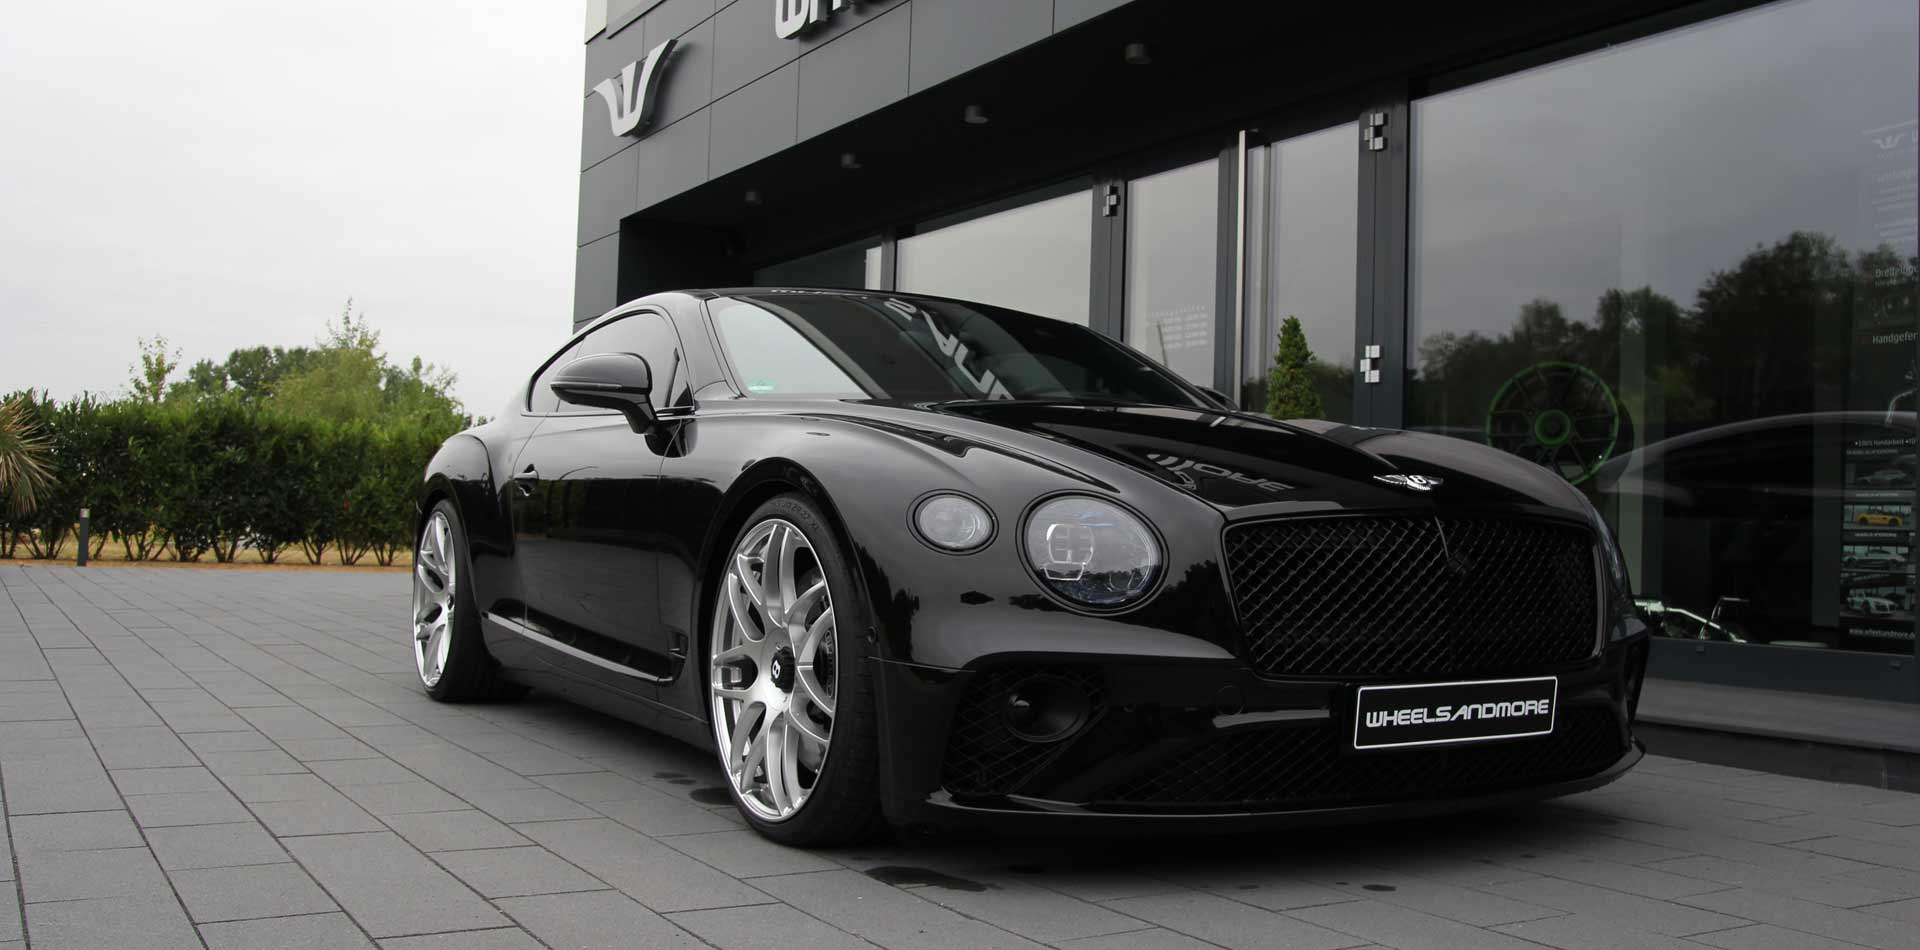 01-bentley-continental-gt-w12-tuning-wheelsandmore.jpg